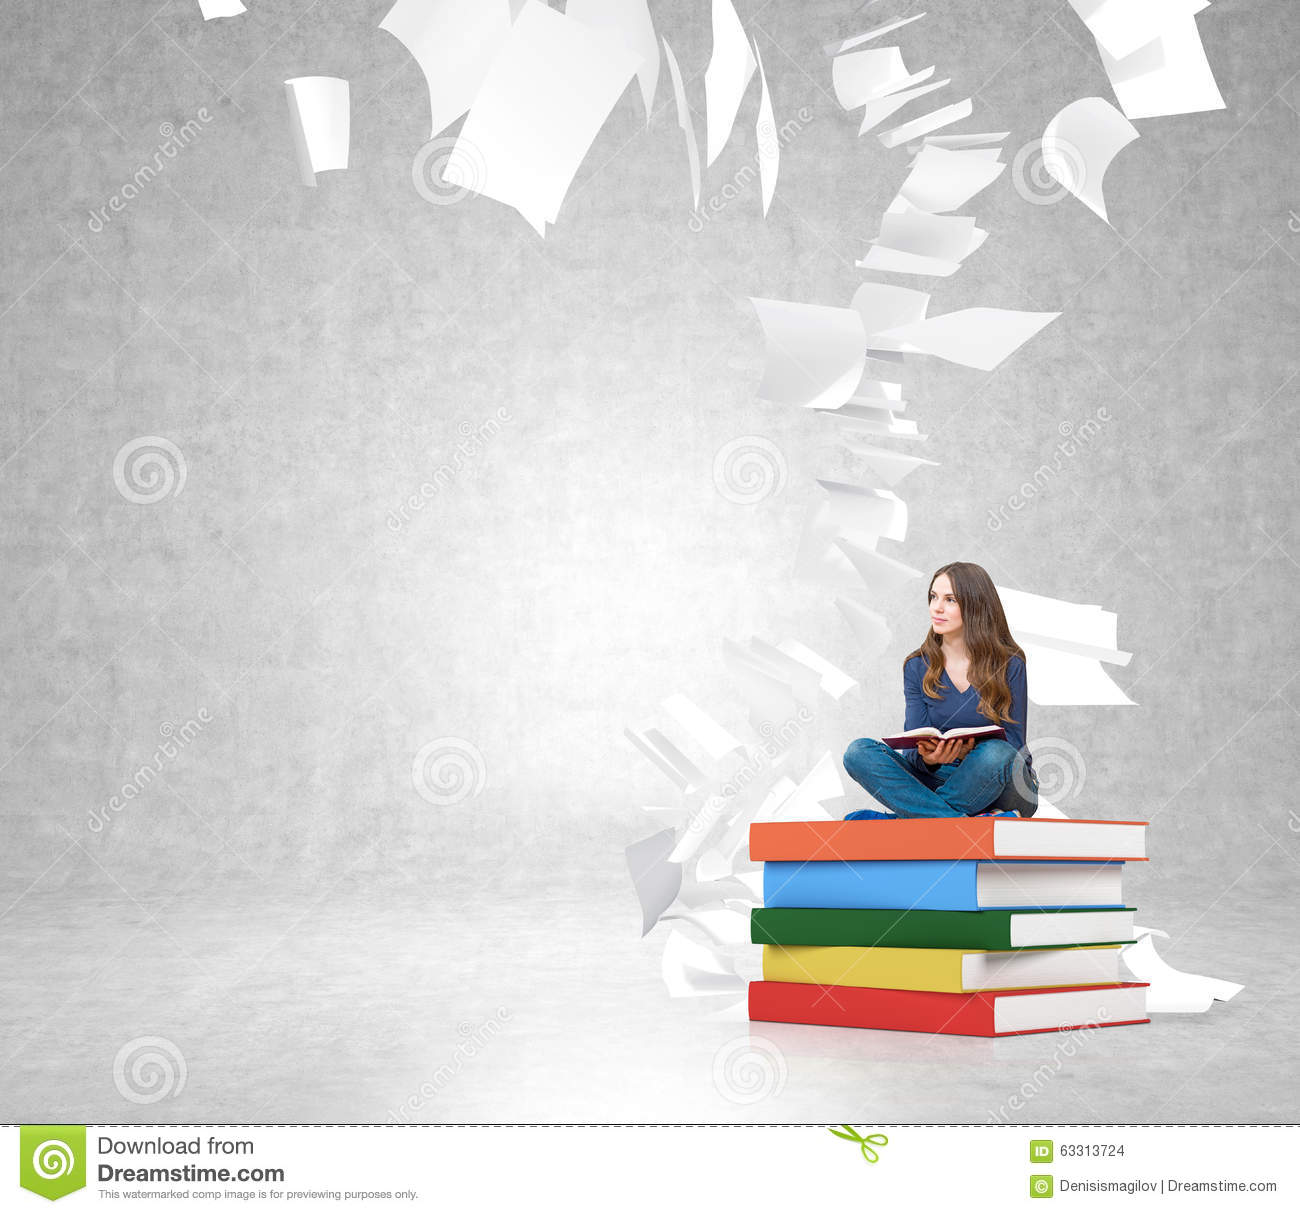 young woman on pile of books with paper flying around